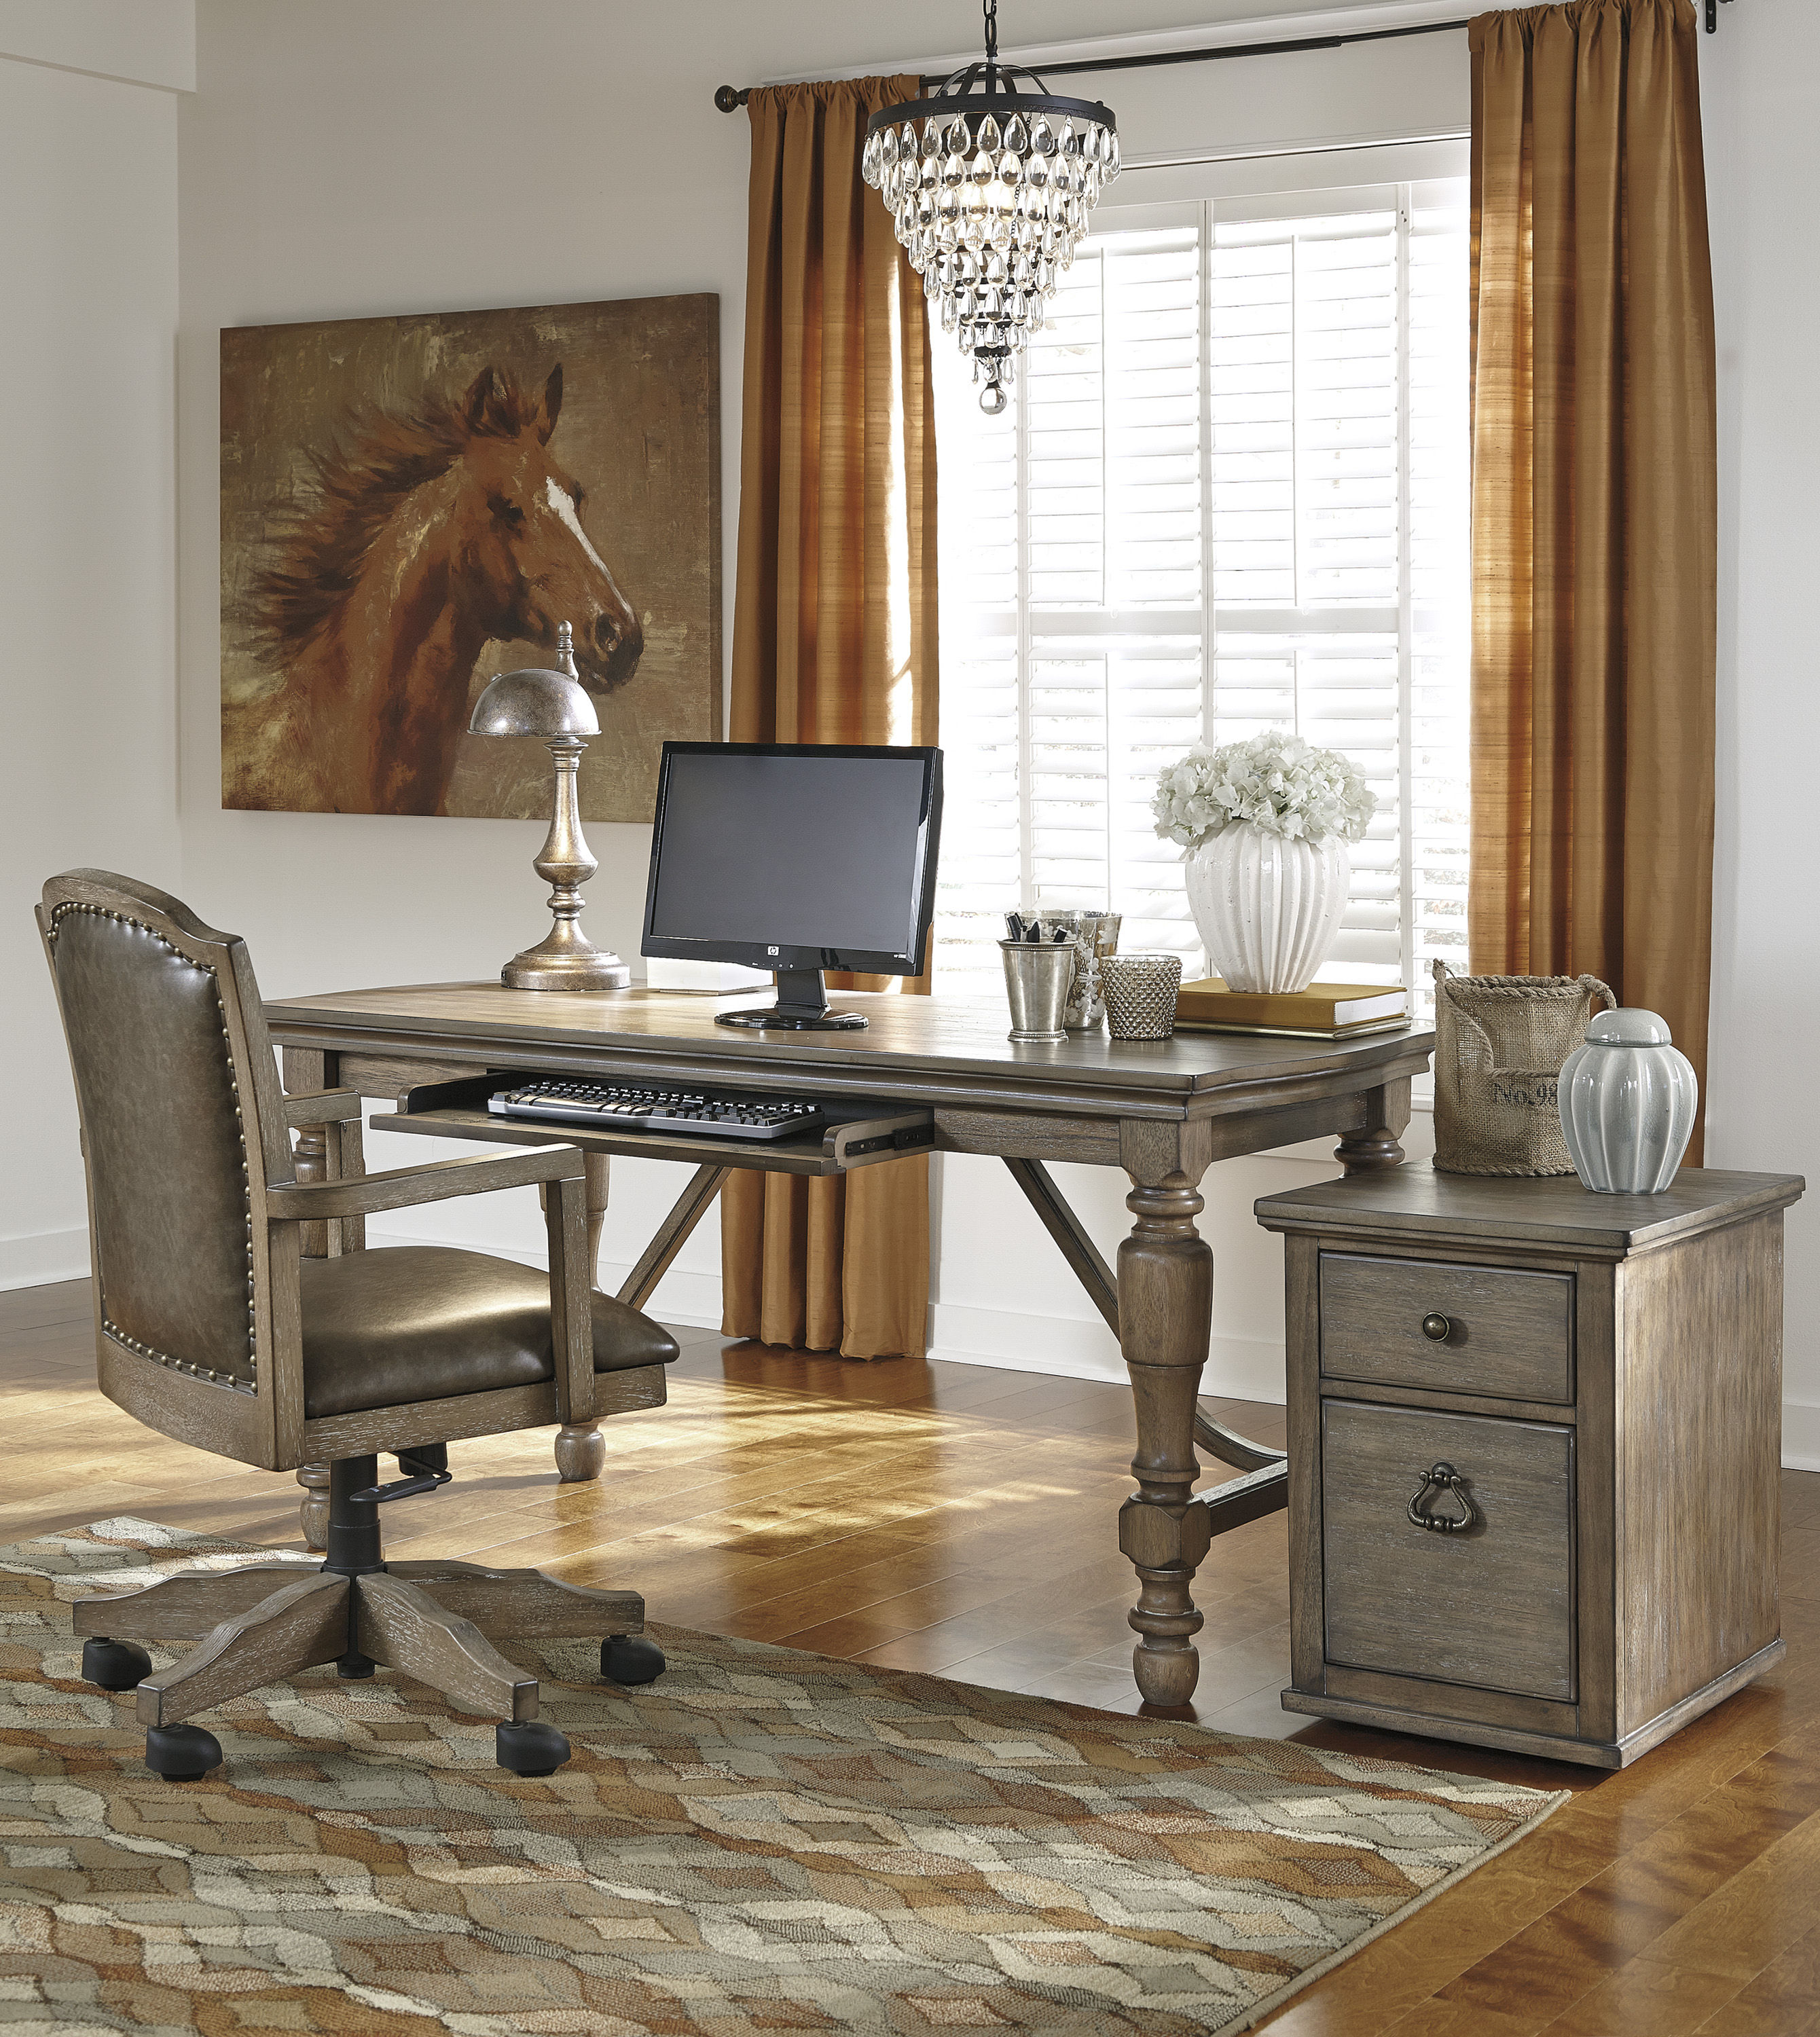 Awe Inspiring Tanshire Wood Faux Leather 3Pc Home Office Furniture Set Interior Design Ideas Clesiryabchikinfo